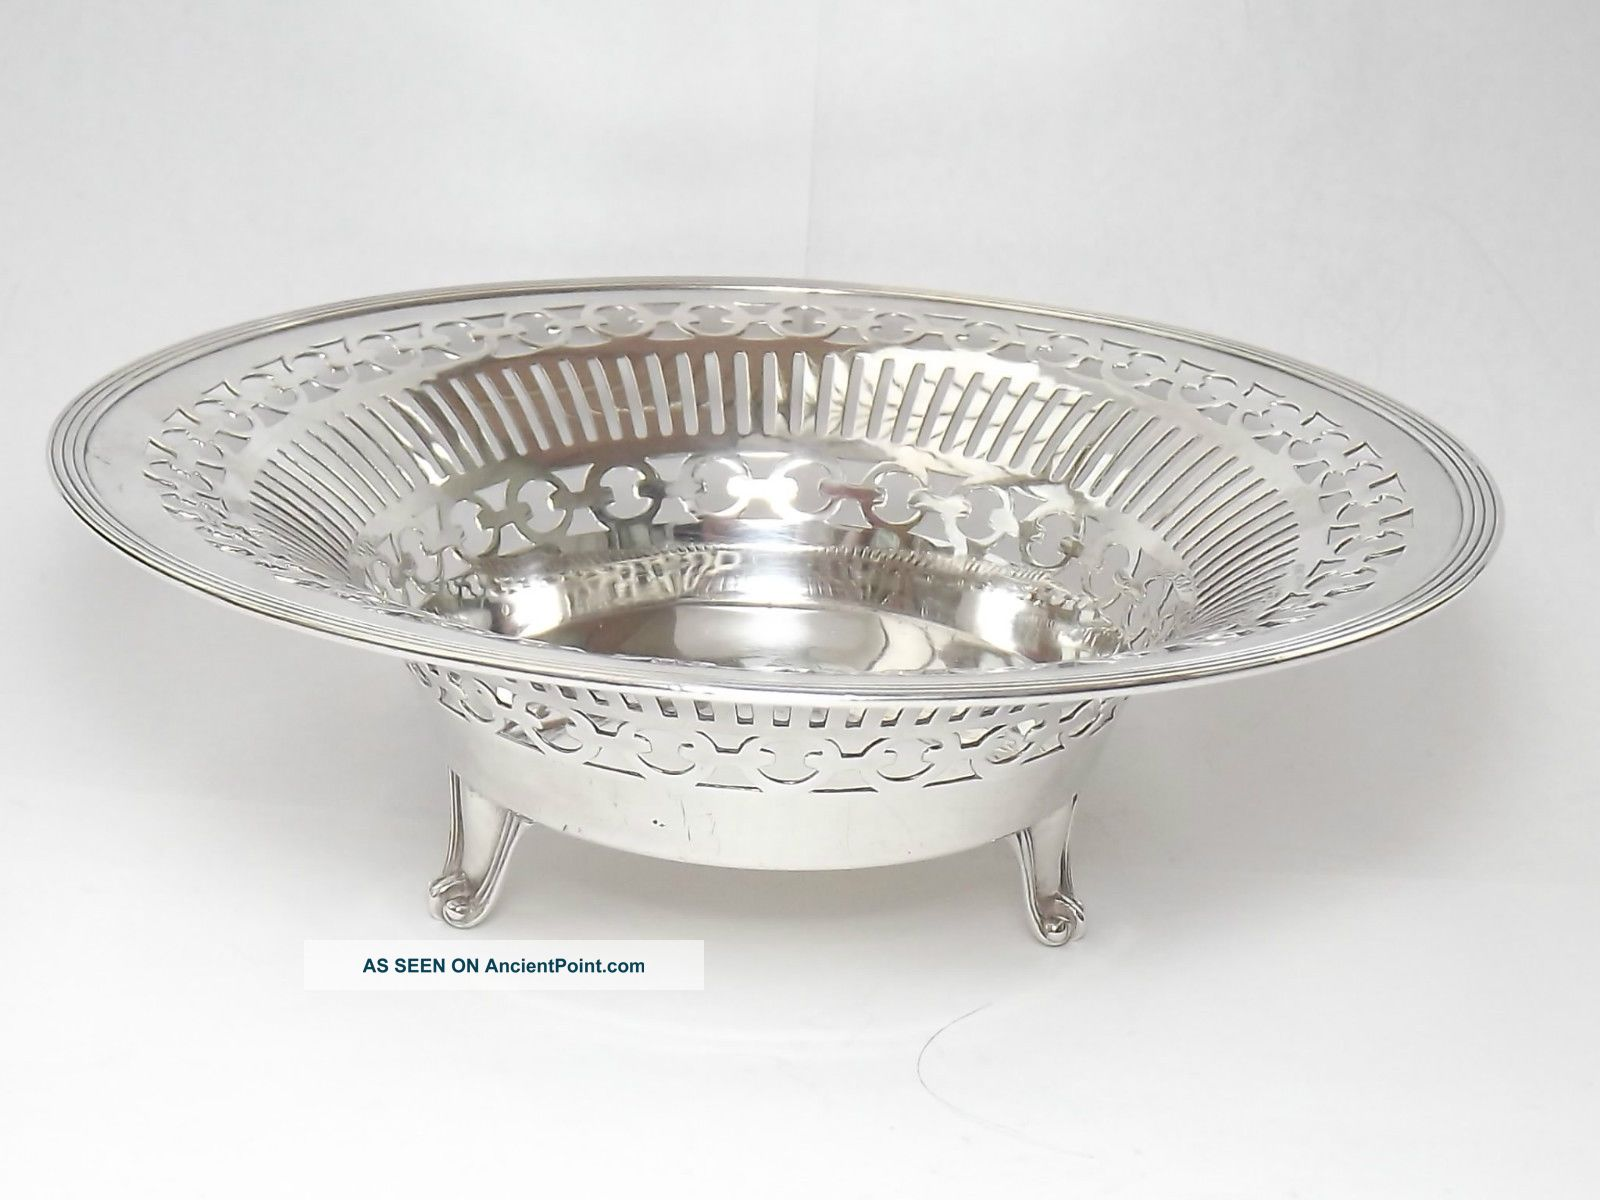 Quality Goldsmiths & Silversmiths Solid Silver Dish - London 1917 Dishes & Coasters photo